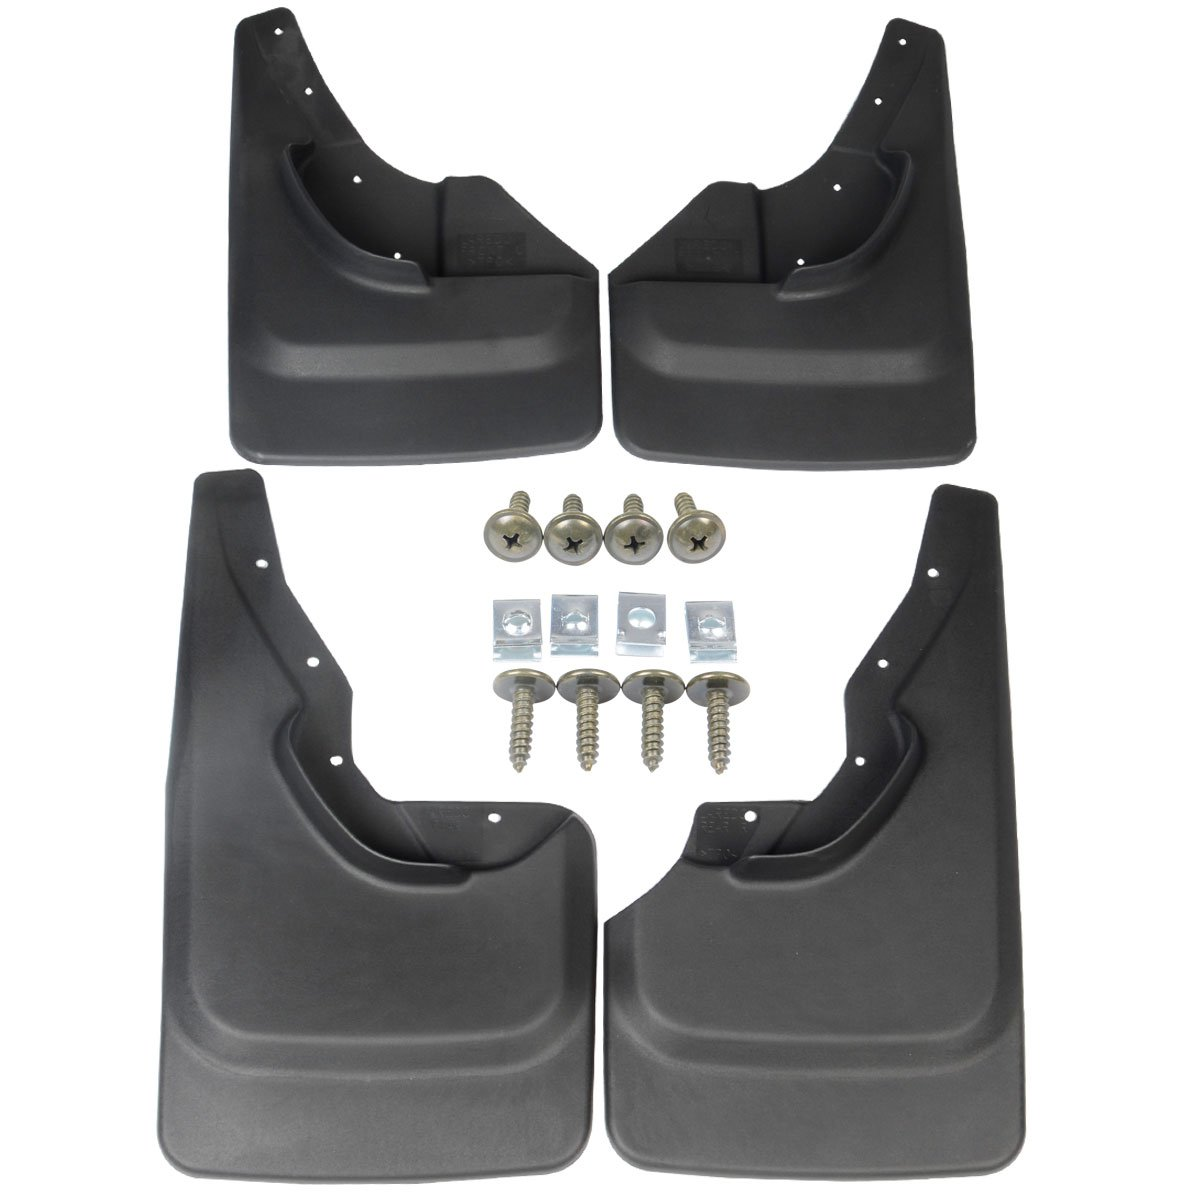 A-Premium Splash Guards Mud Flaps Mudflaps for Jeep Grand Cherokee 1999-2004 Laredo Edition only 4-PC Set